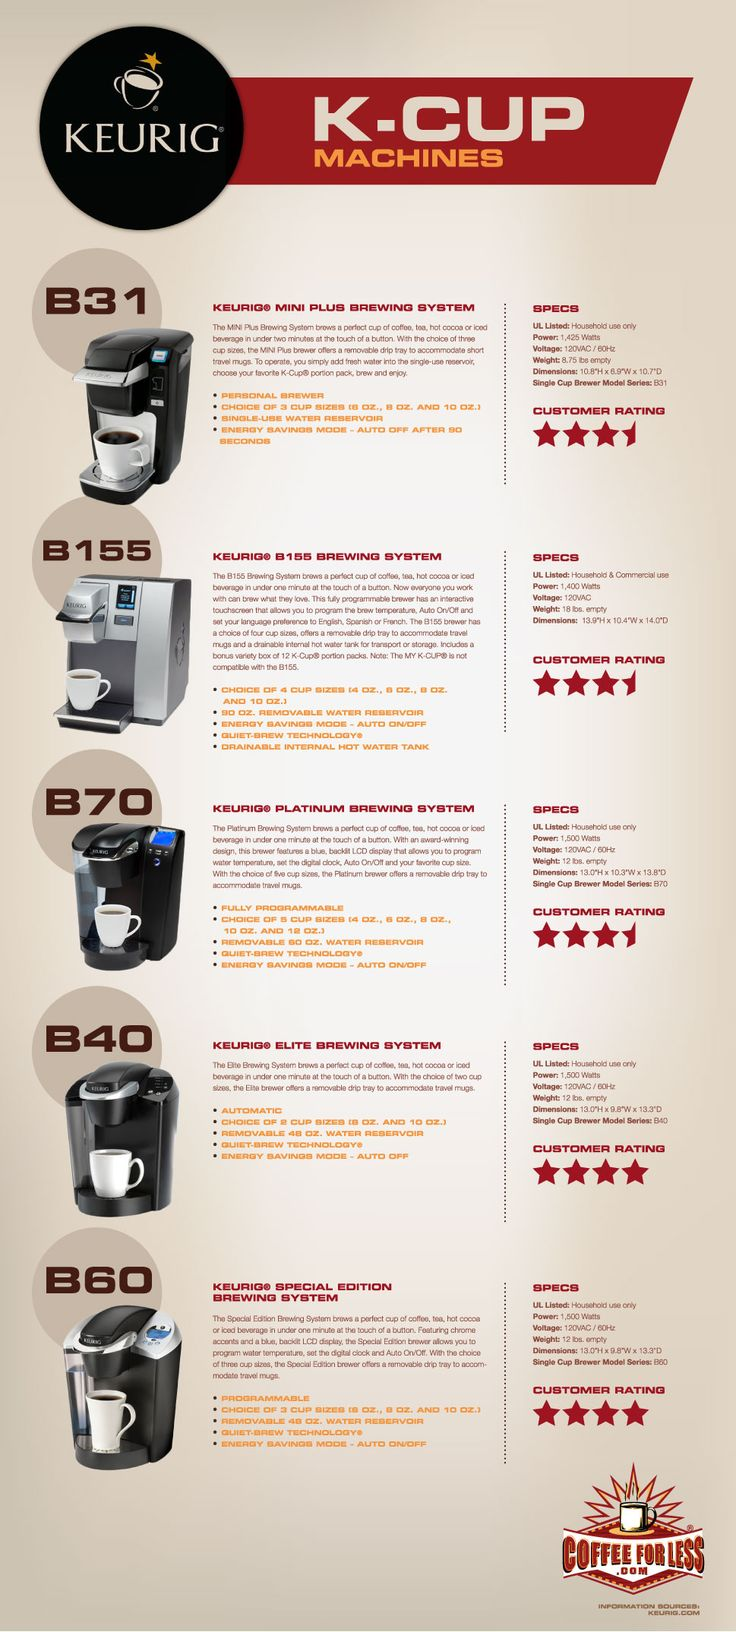 13 best images about Keurig Coffee Makers on Pinterest Water supply, Compact and Watches